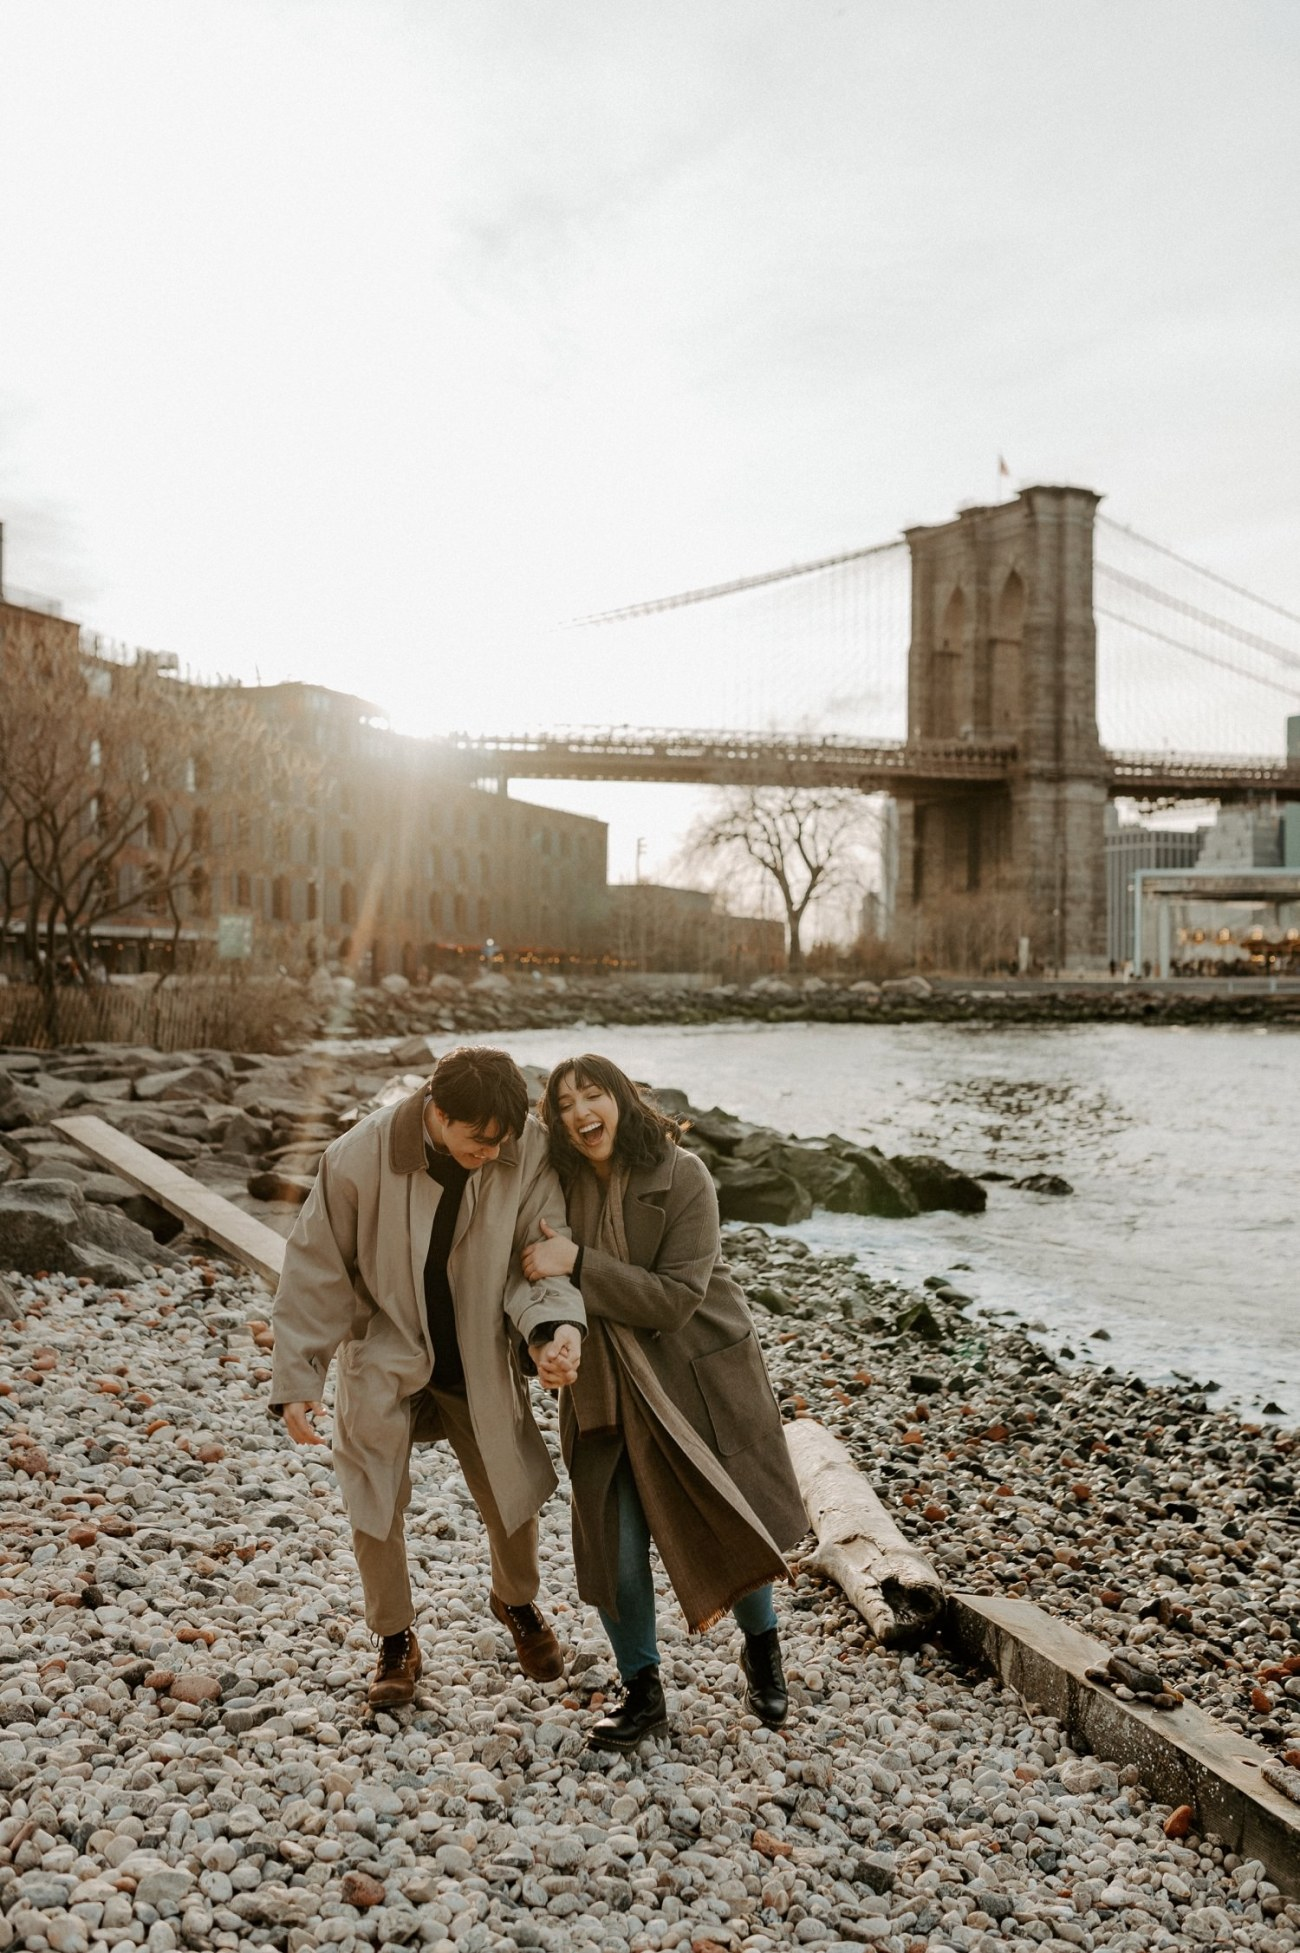 Dumbo Brooklyn Engagement Photos New York City Couple Session New York Wedding Photographer NYC Best Engagement Photos Location Anais Possamai Photography 31